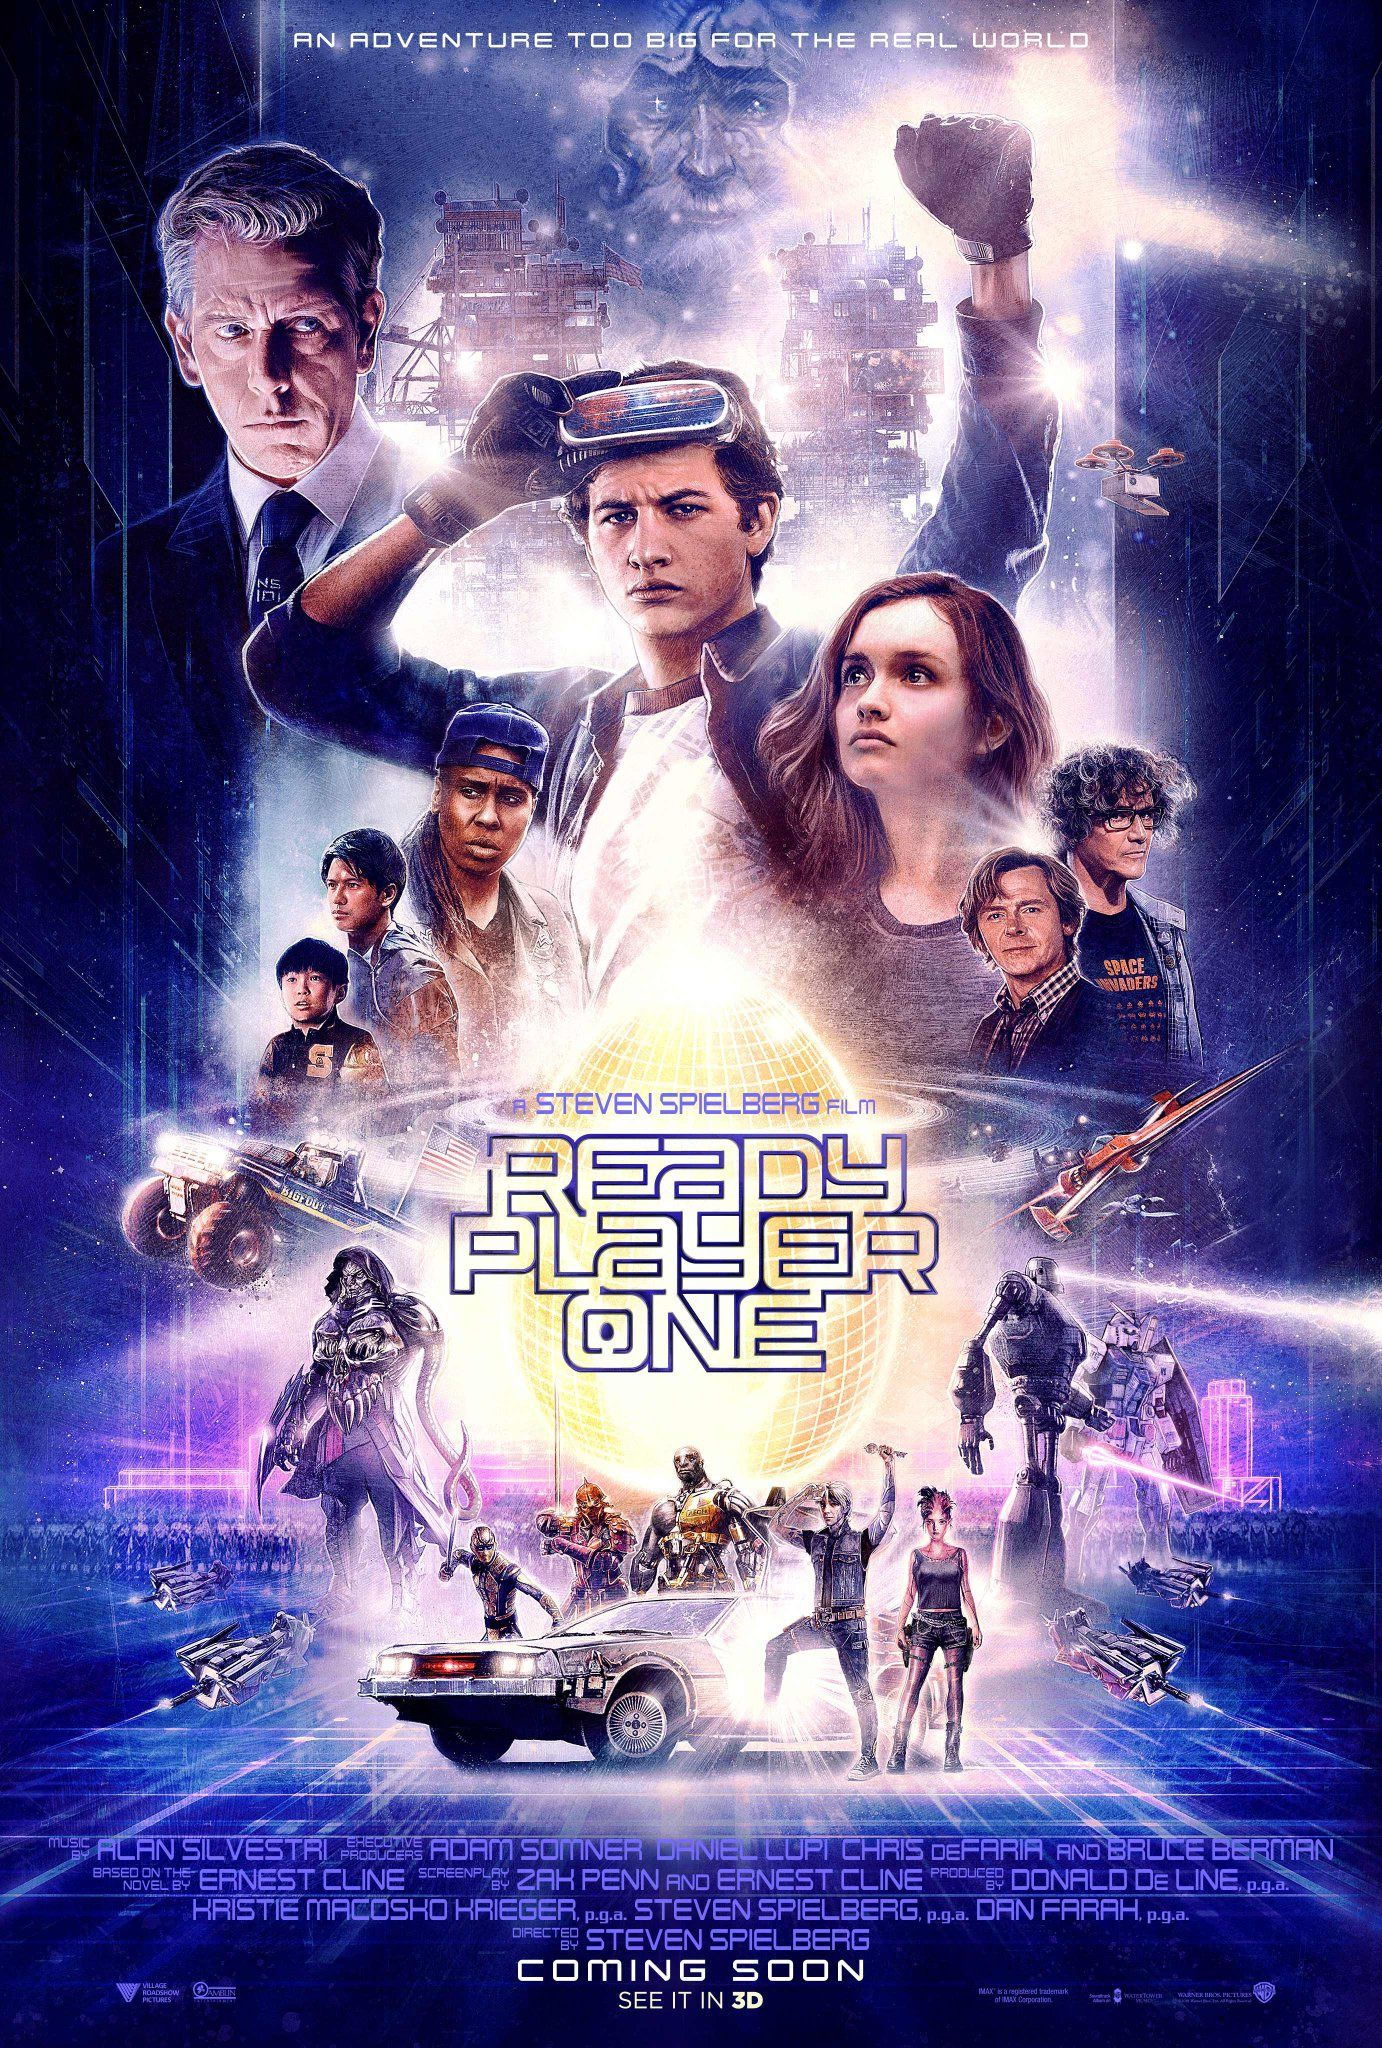 Ready Player One 2018 Dir By Steven Spielberg When The Creator Of A Virtual Reality World Ca Ready Player One Movie Ready Player One Full Movies Online Free